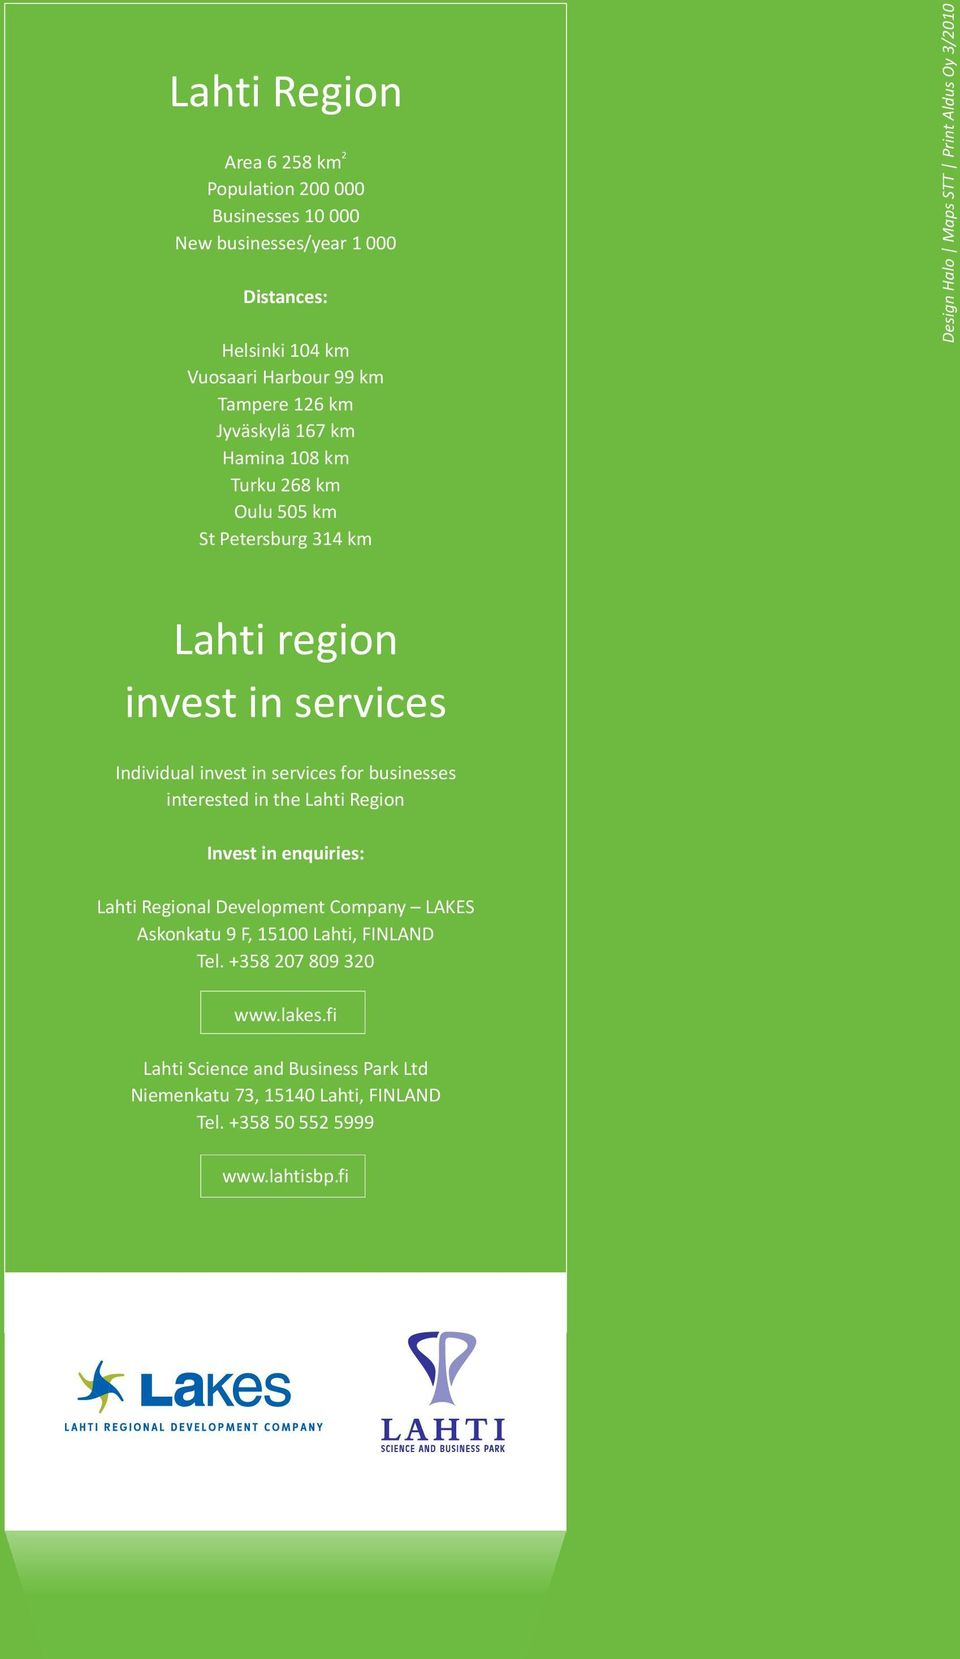 Individual invest in services for businesses interested in the Lahti Region Invest in enquiries: Lahti Regional Development Company LAKES Askonkatu 9 F,